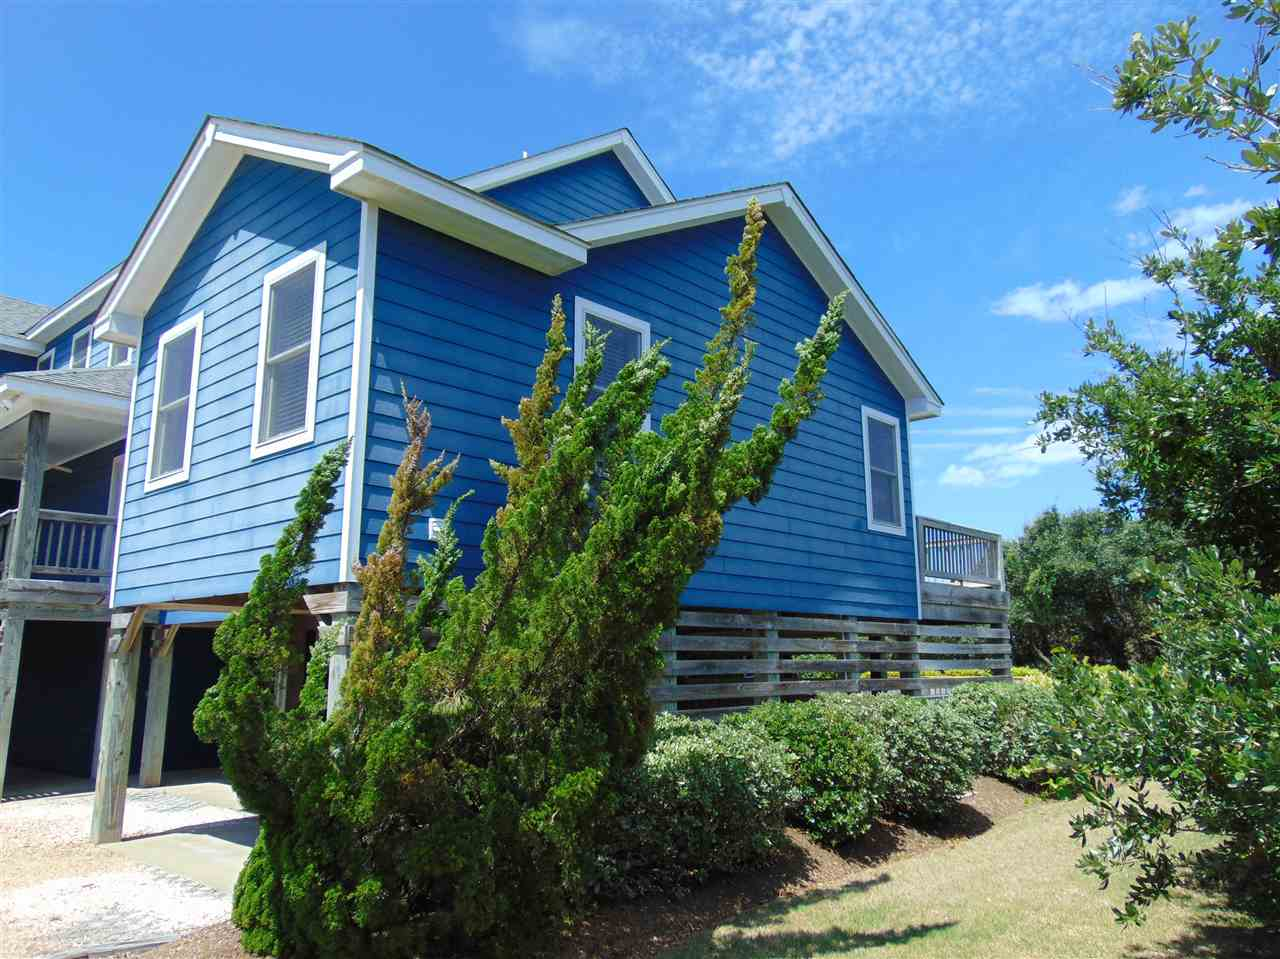 152 Duck Road, Southern Shores, NC 27949, 7 Bedrooms Bedrooms, ,7 BathroomsBathrooms,Residential,For sale,Duck Road,96561